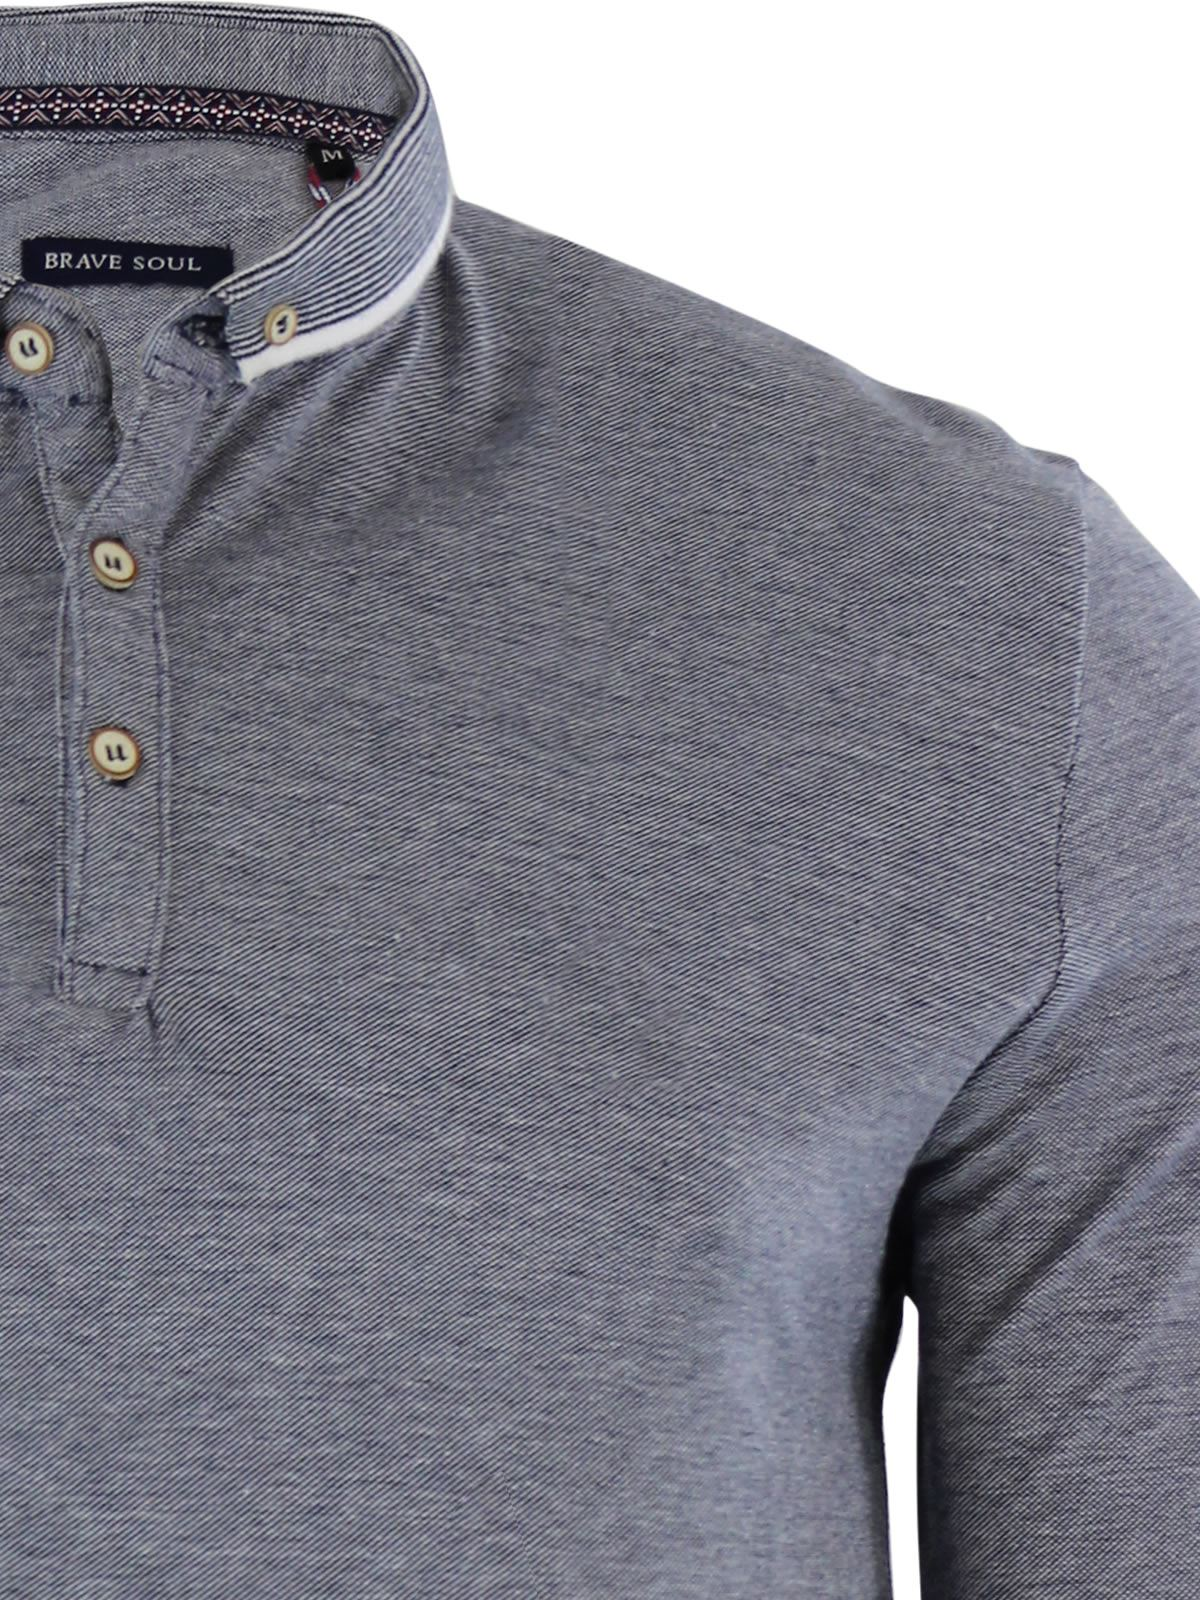 Mens-Polo-Shirt-Brave-Soul-Long-Sleeve-Collared-Top-In-Various-Styles thumbnail 7